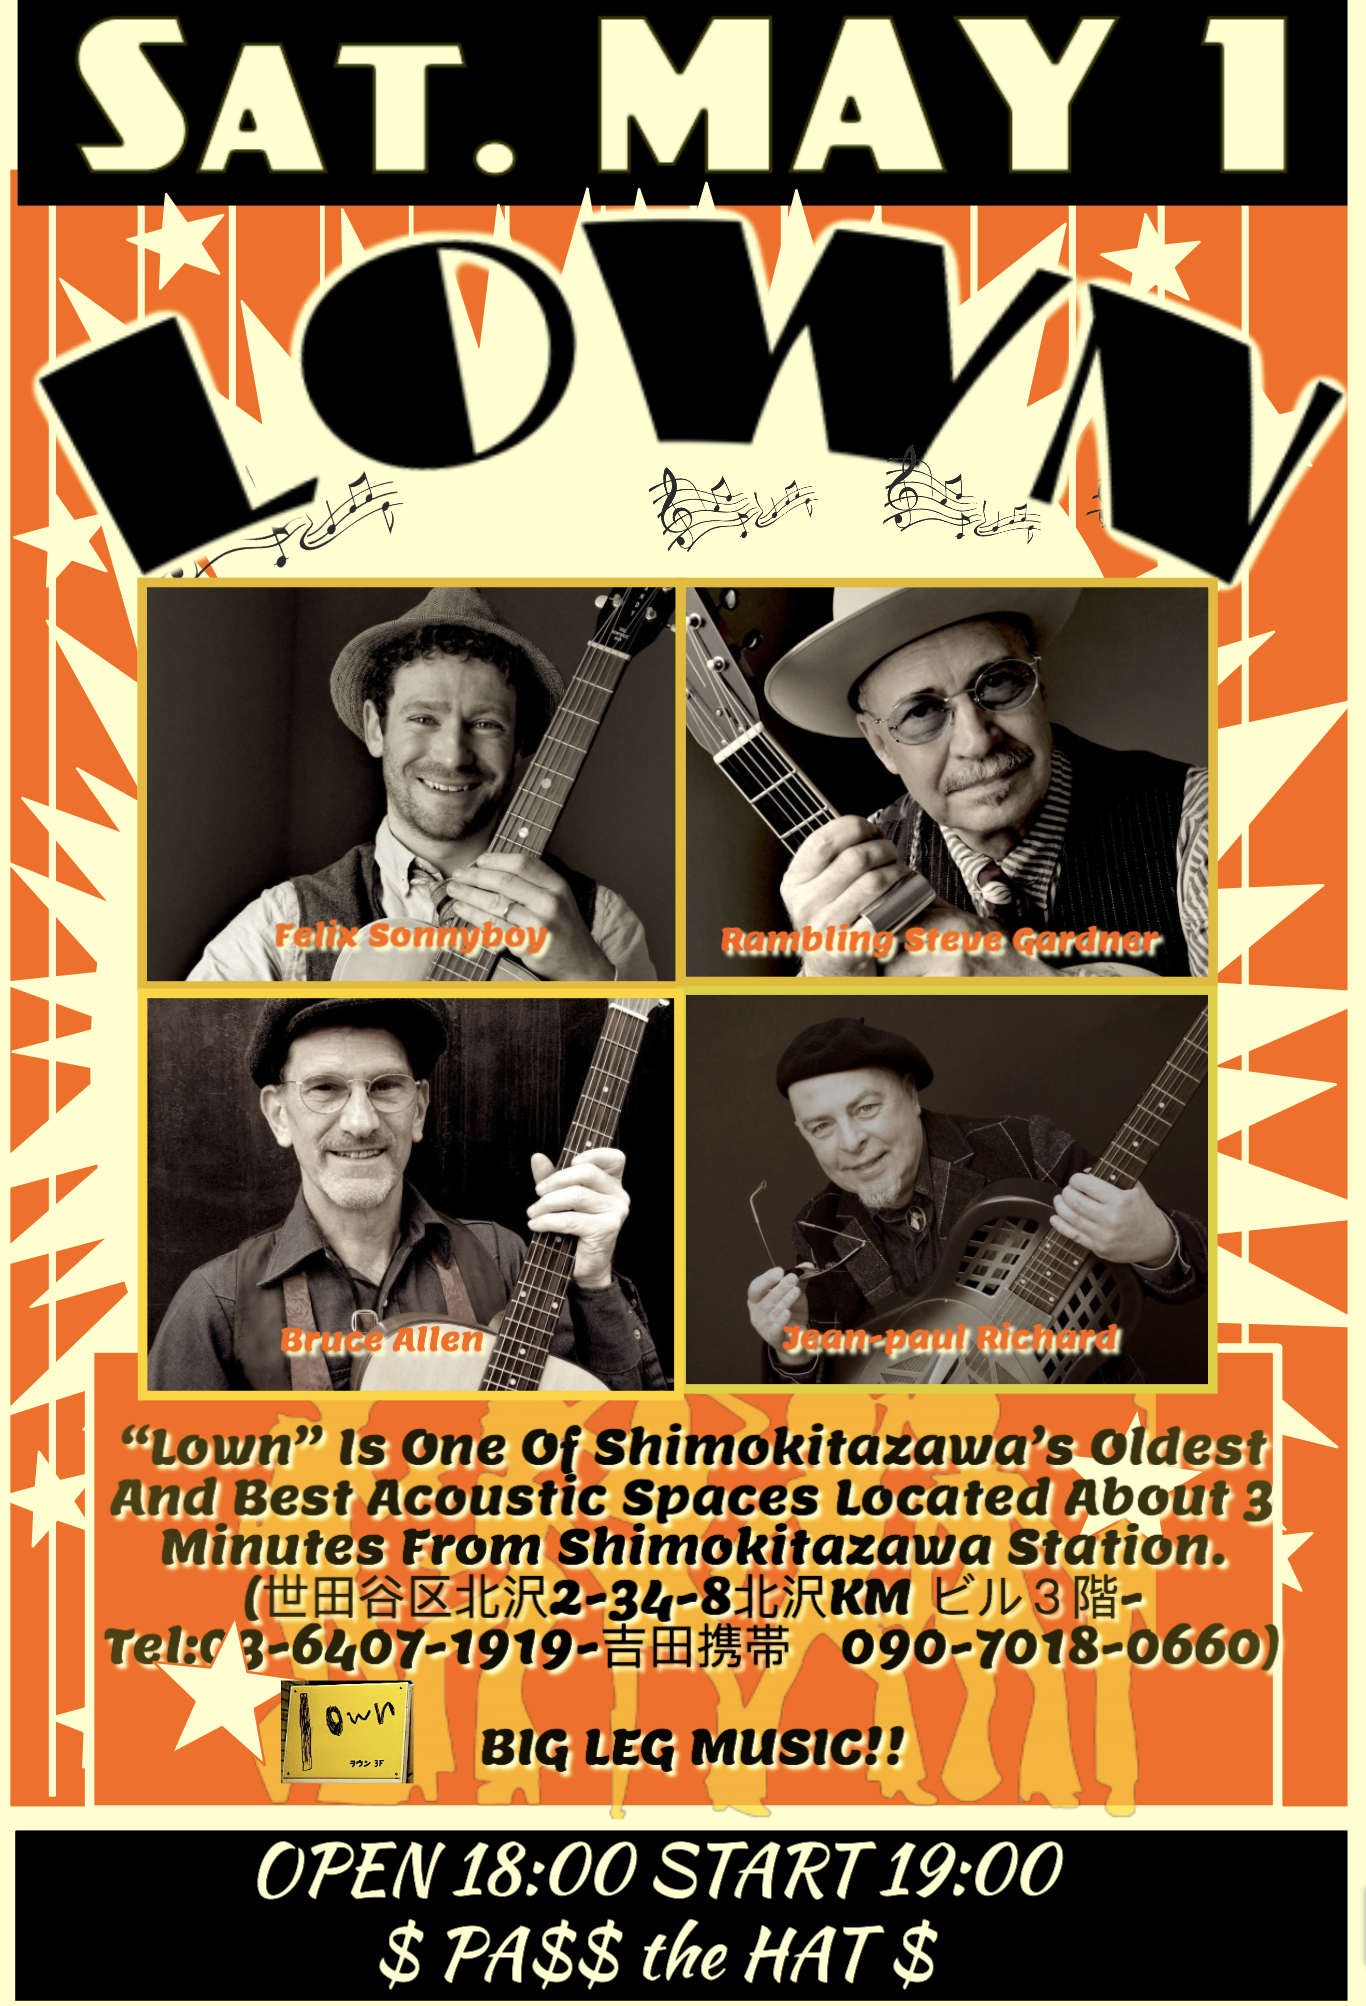 """LOWN"" Shimokitazawa (SATURDAY) MAY. 1, 202!!"